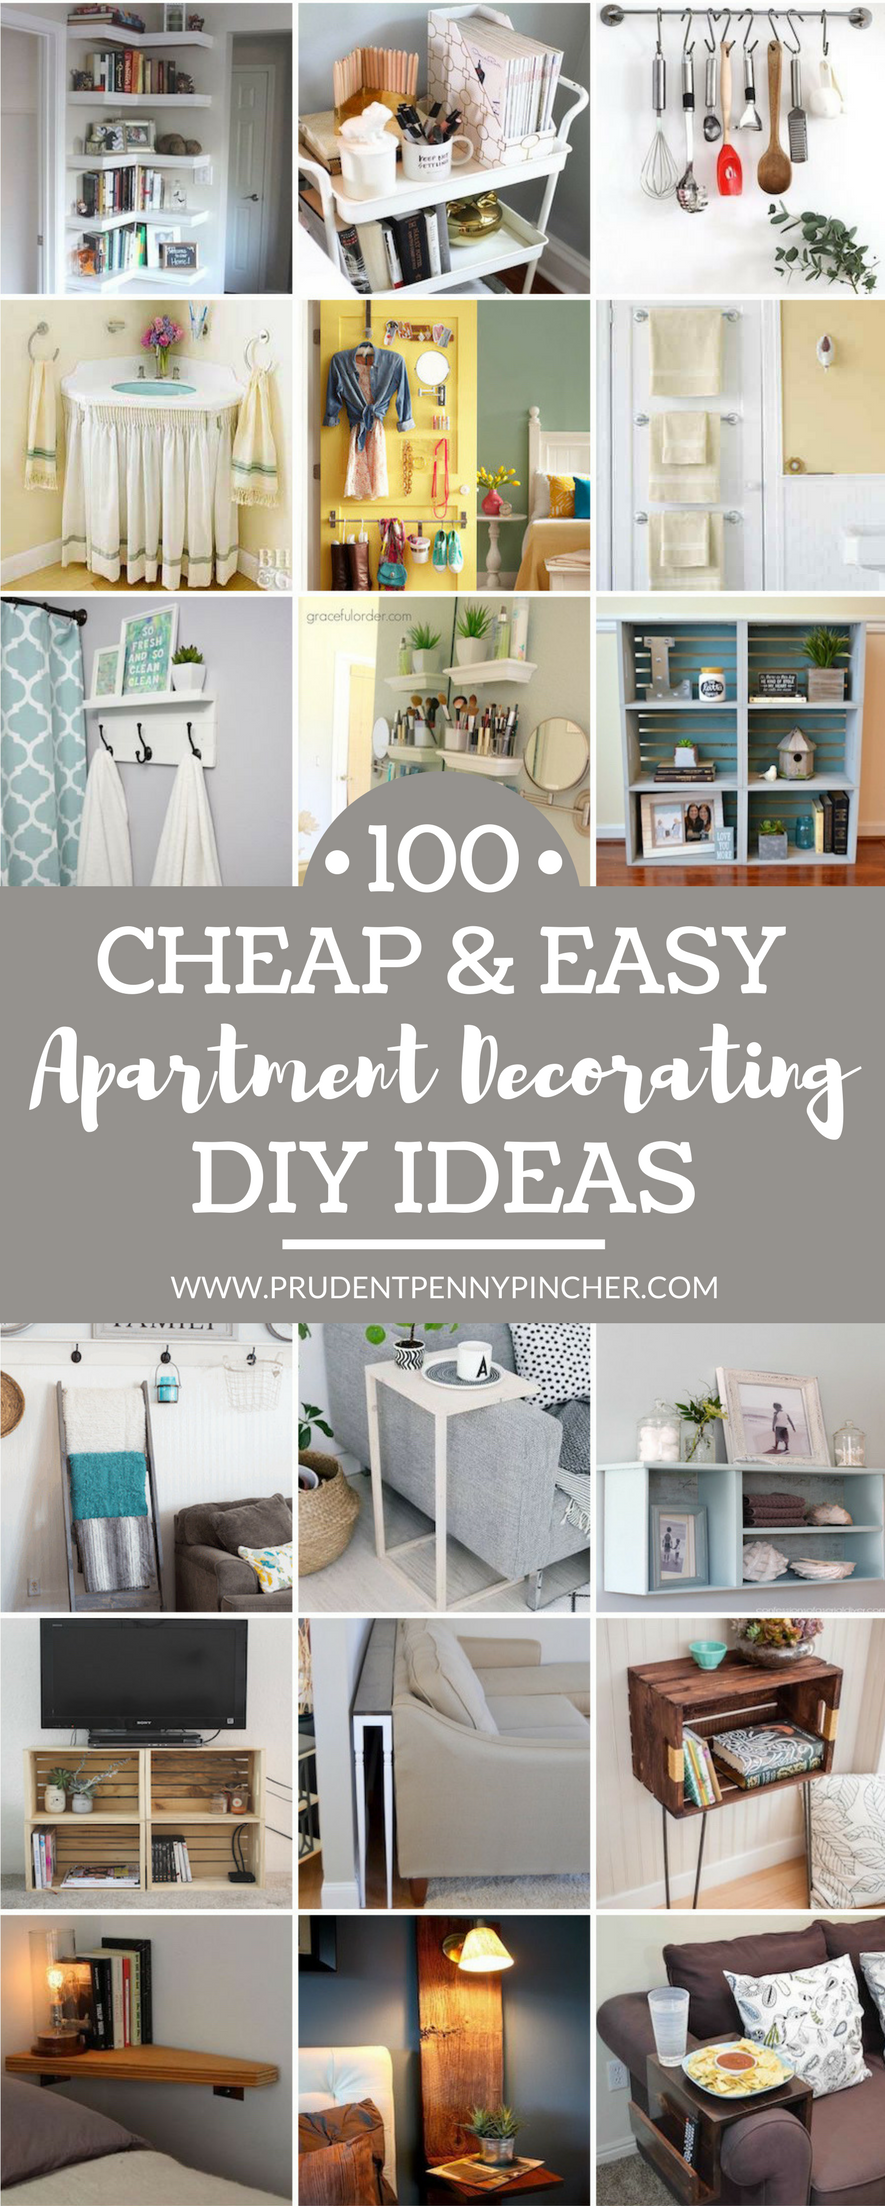 100 Cheap and Easy DIY Apartment Decorating Ideas | Diy ...